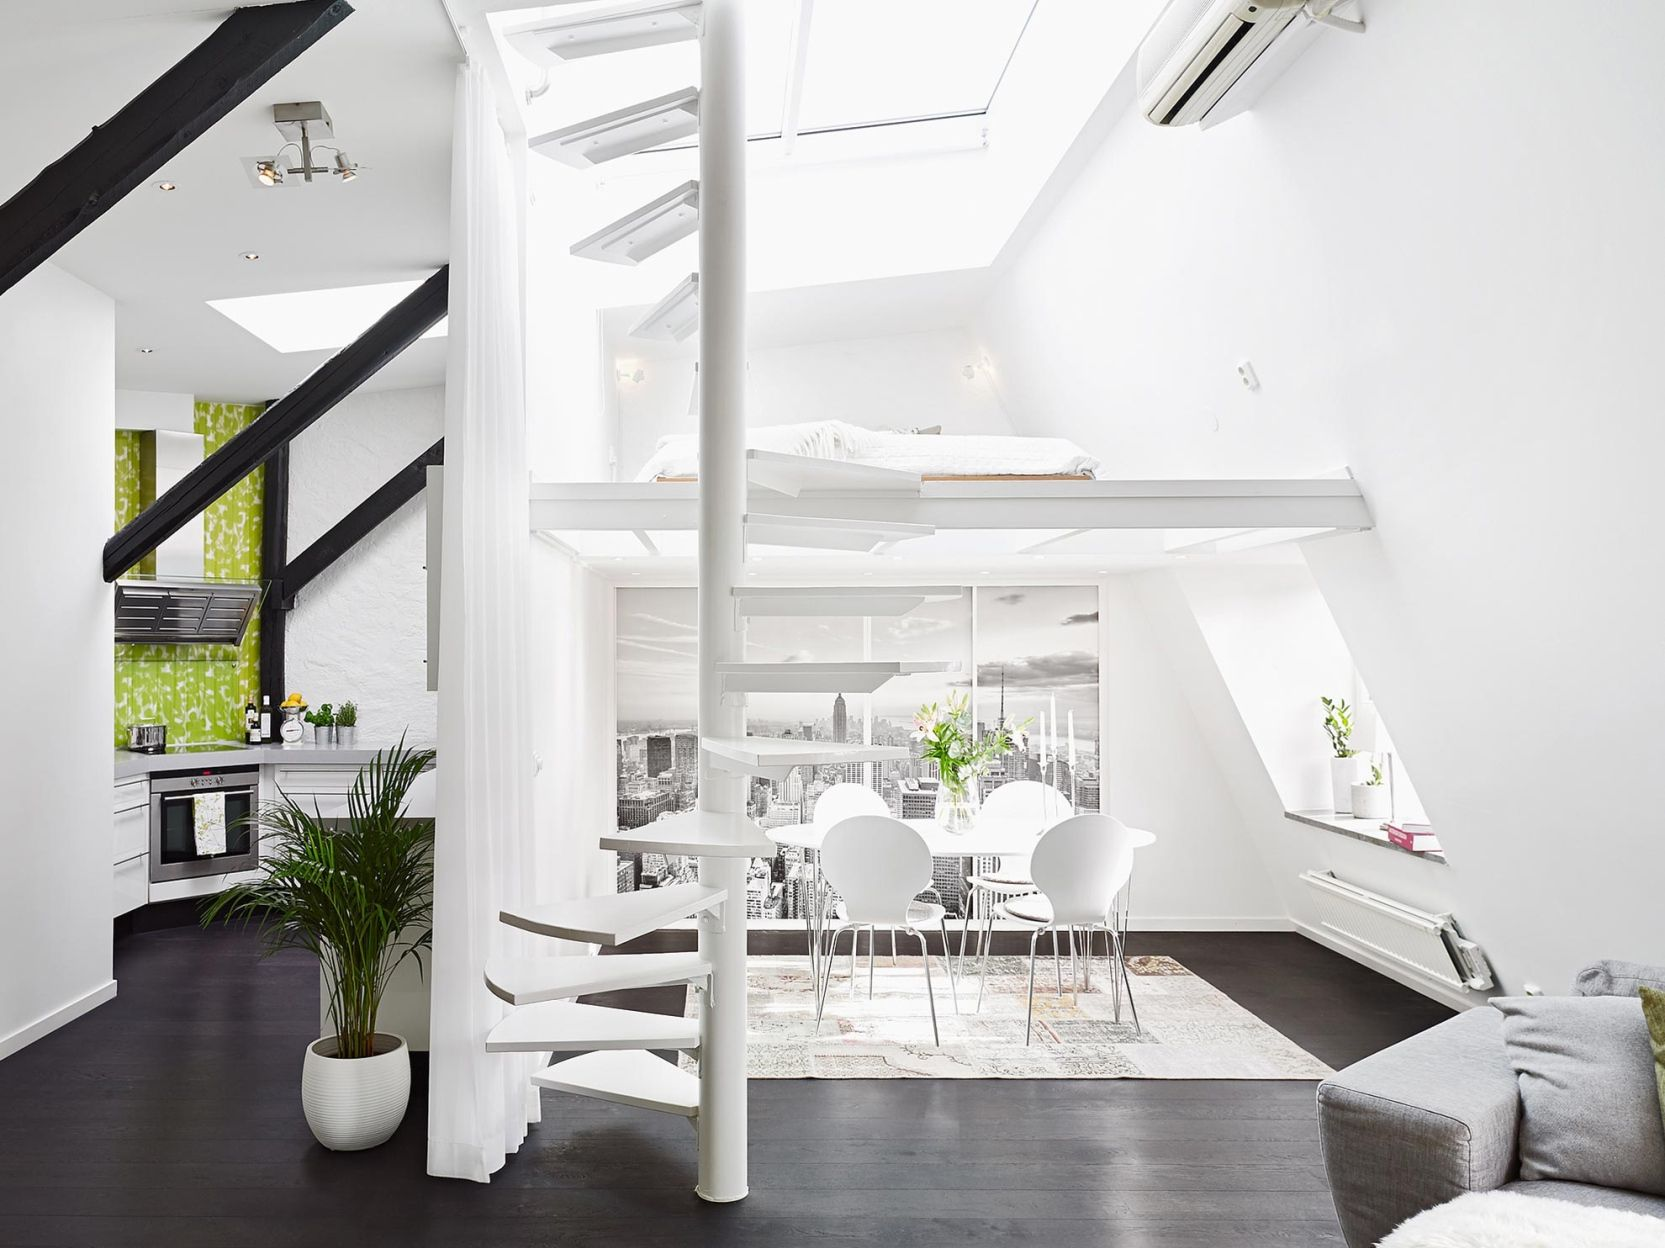 A duplex with stairs to the roof floor penthouses American oak interior  design nordic style duplex